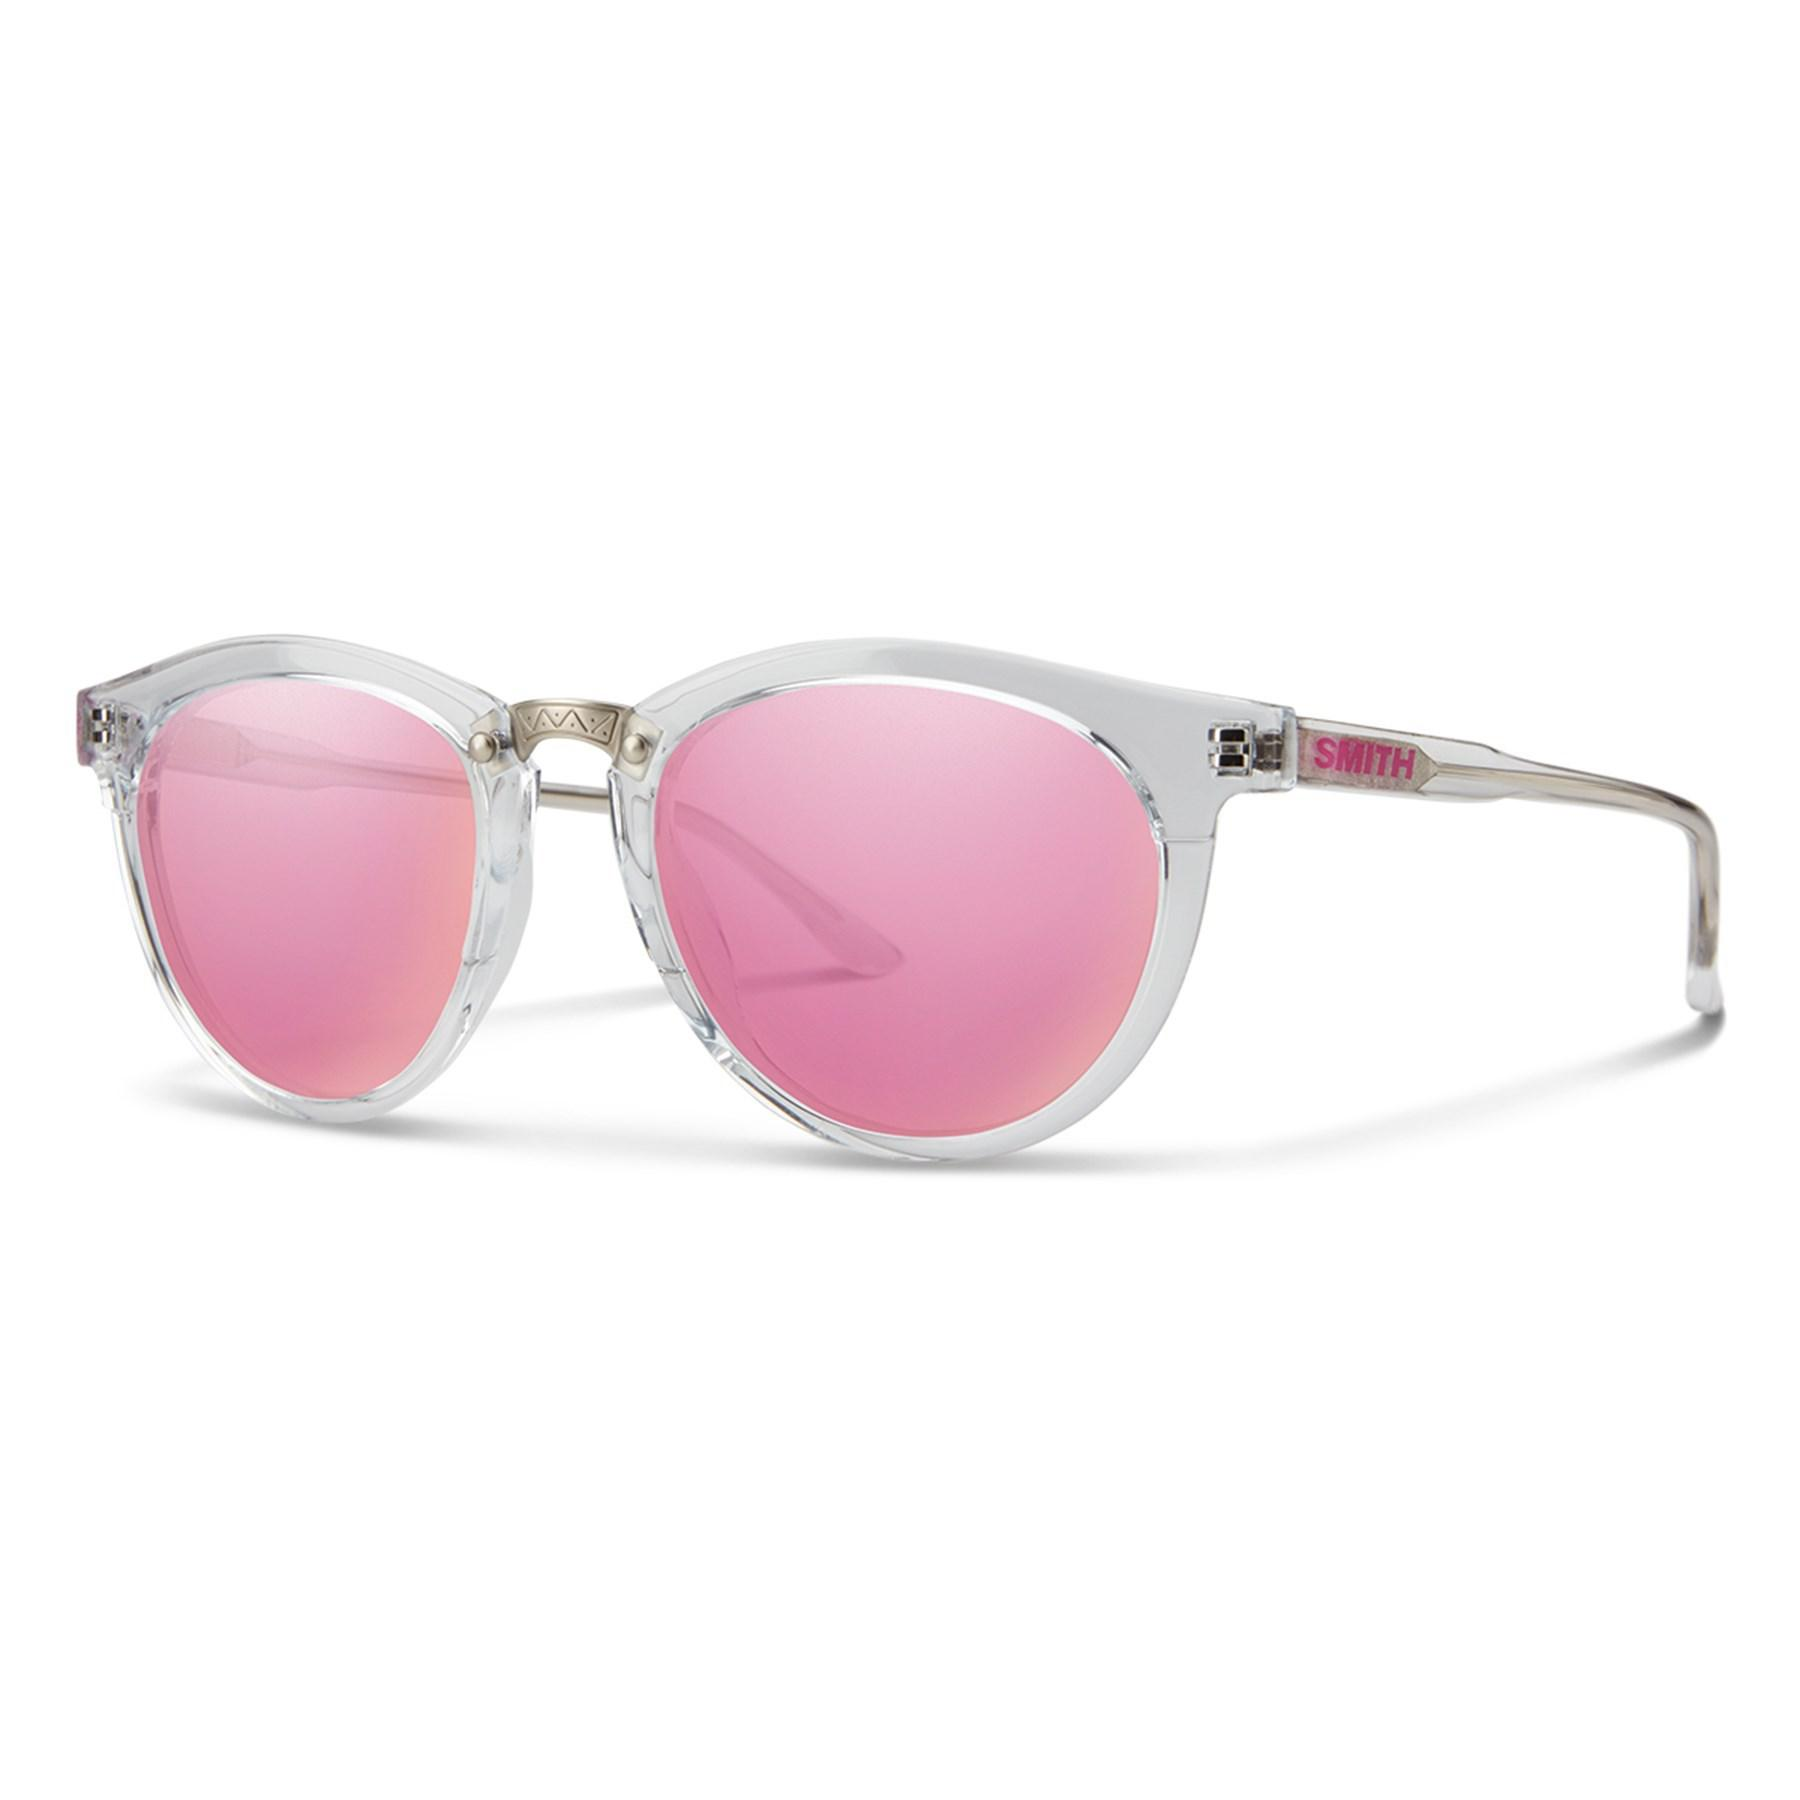 4c8c7bff29 Lyst - Smith Optics Questa Mirror Sunglasses (for Women) in Pink